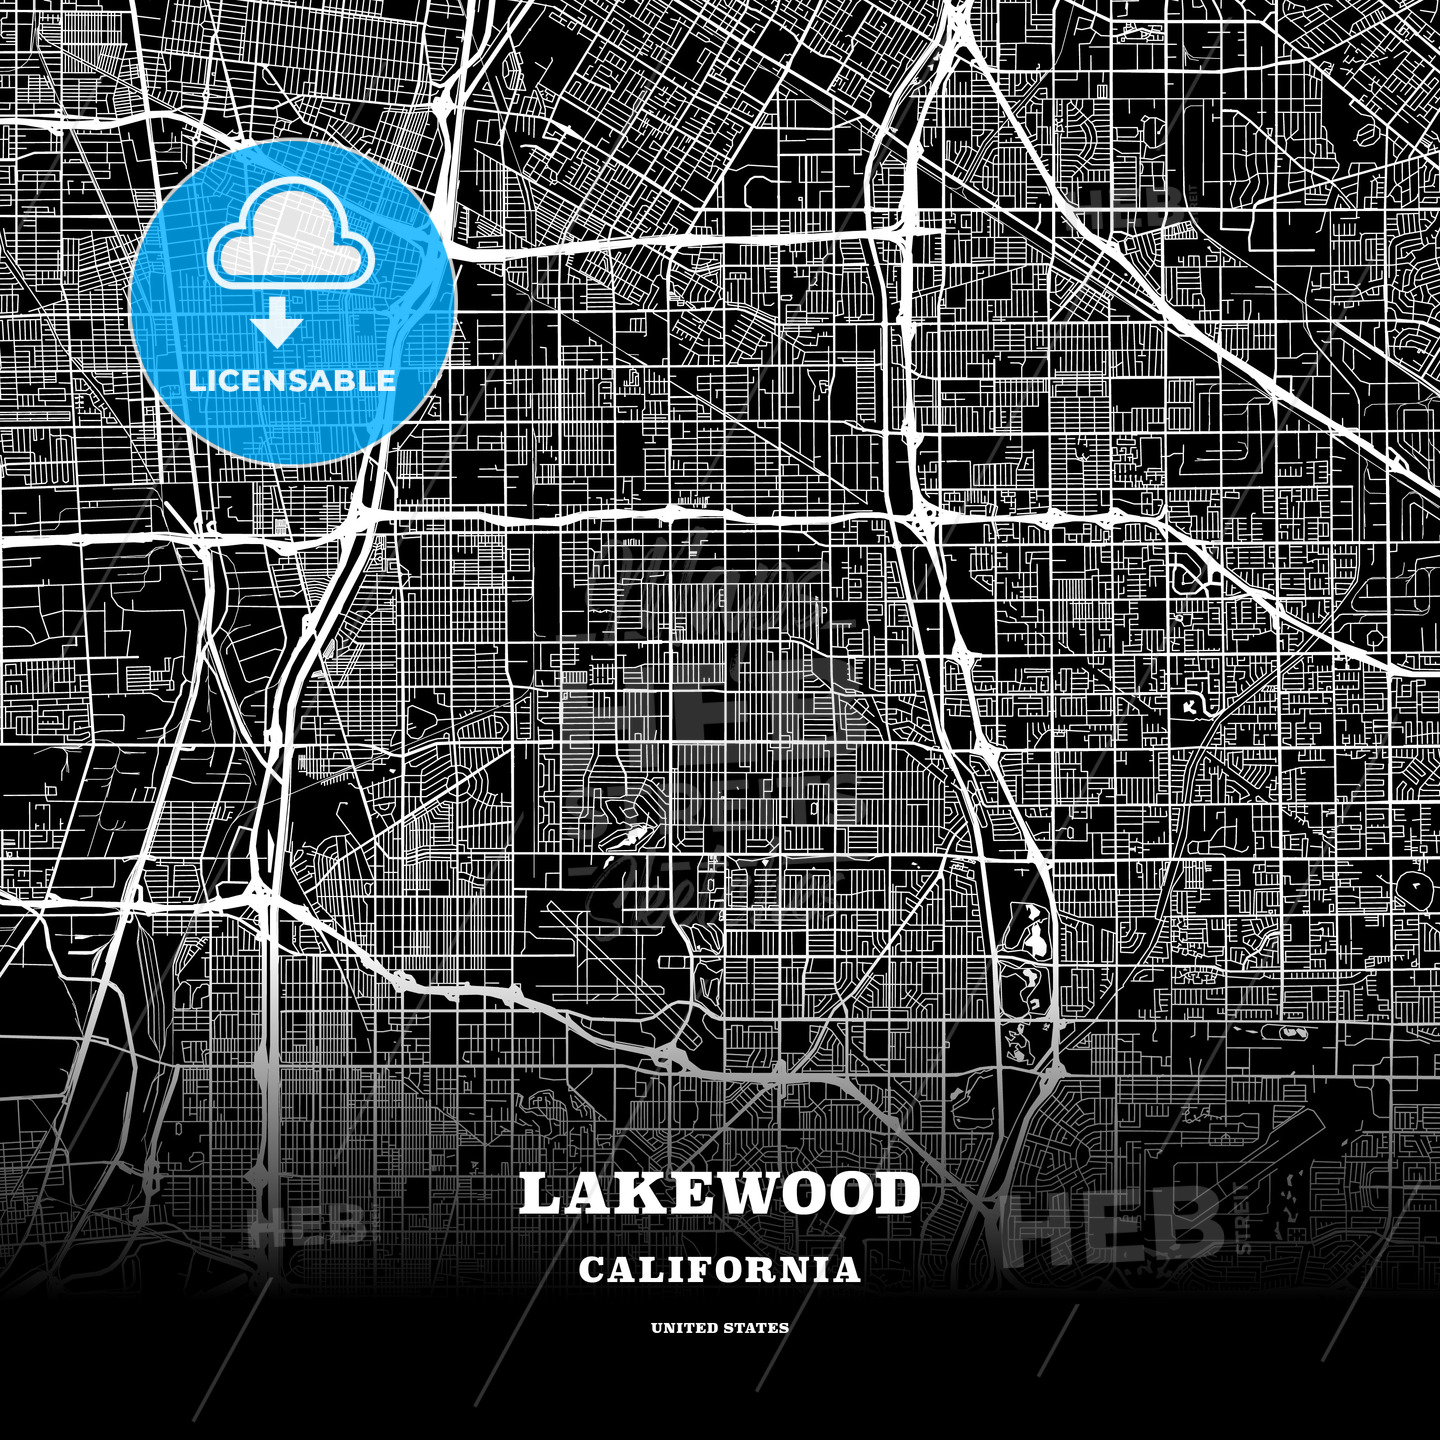 Black map poster template of Lakewood, California, USA on usa welcome logo, usa parking logo, google maps logo, united states logo, usa art logo, usa restaurant logo, usa car logo, usa login logo, us states logo, usa letter logo, usa outline logo, usa union logo, education usa logo, north america logo, usa baseball logo, usa travel logo, usa school logo, usa hockey logo, product of usa logo, usa hat logo,